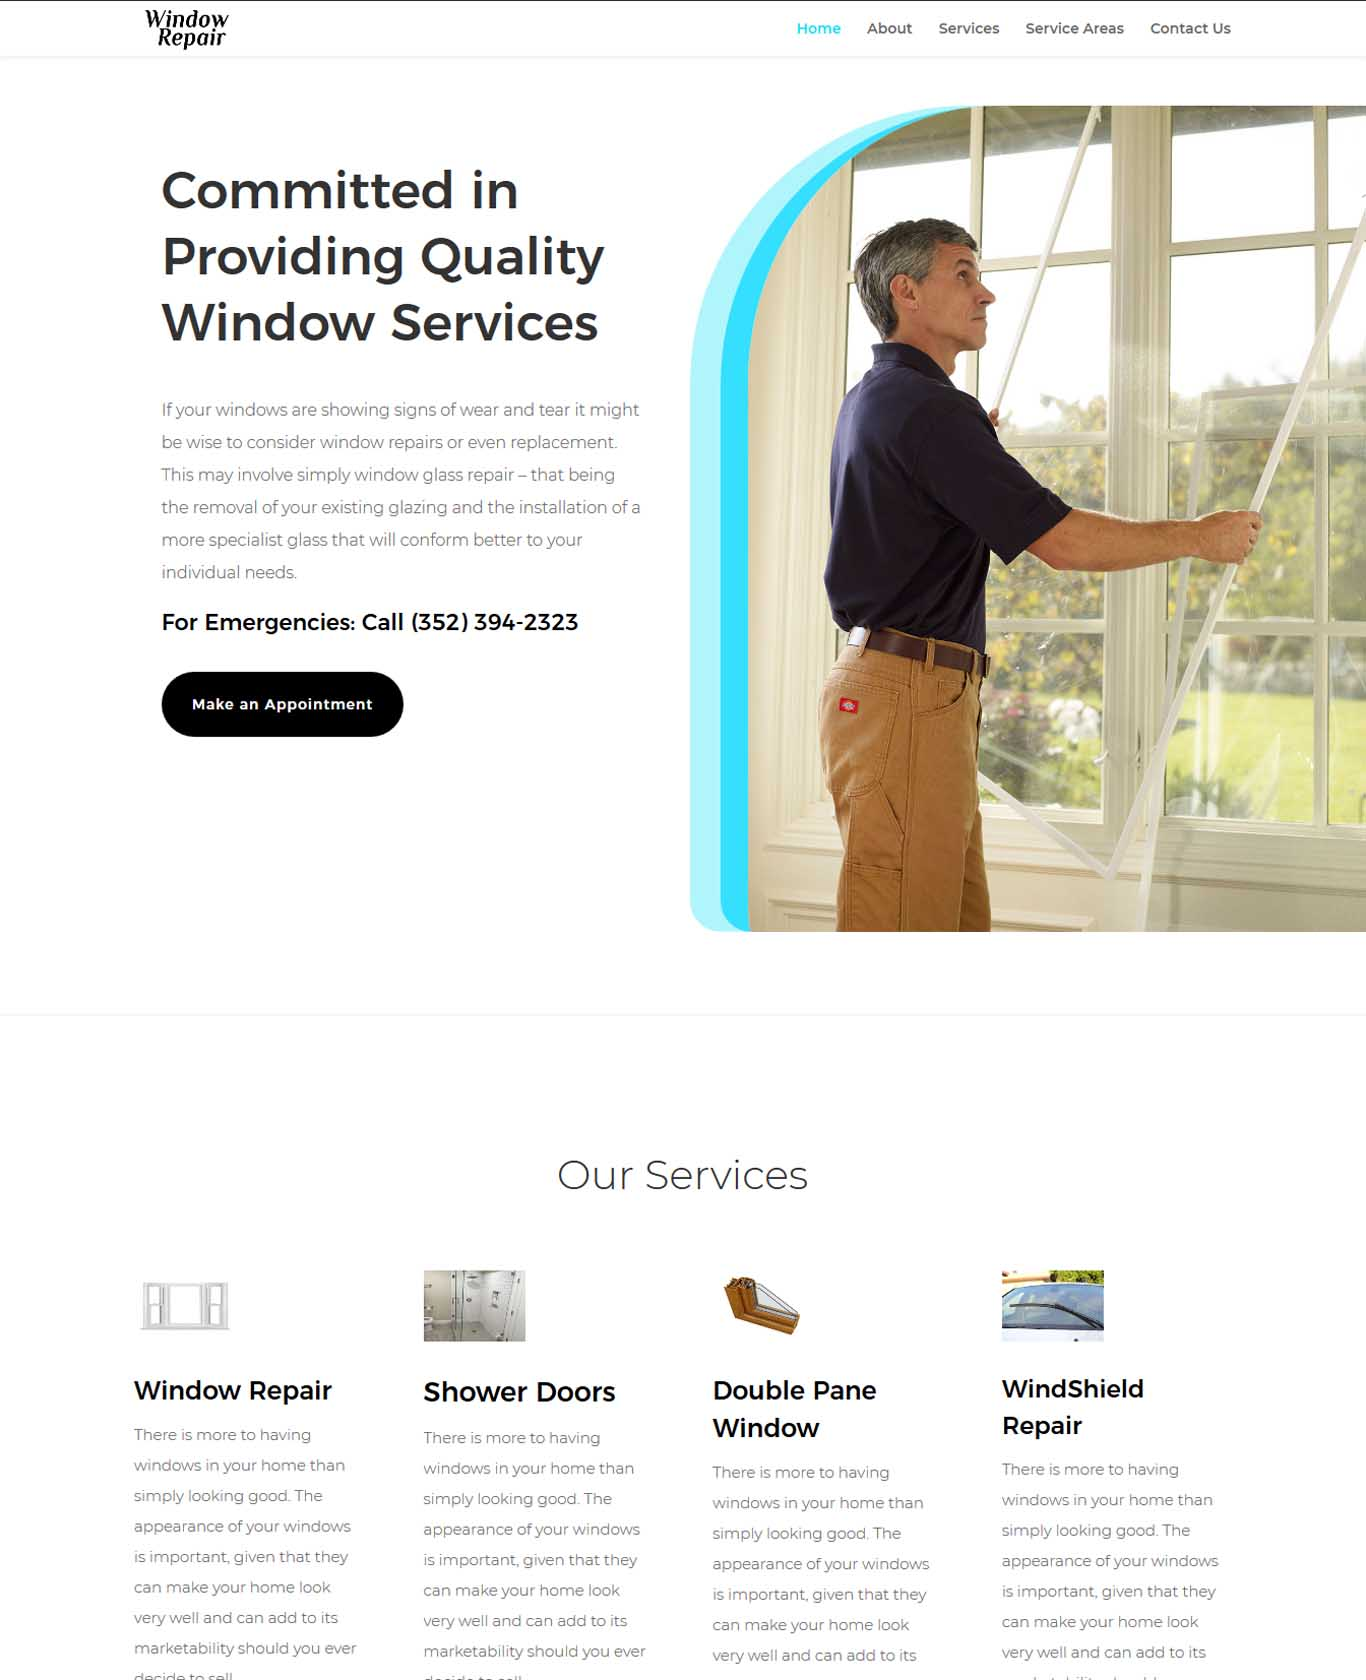 Committed in Providing Quality Window Services Website